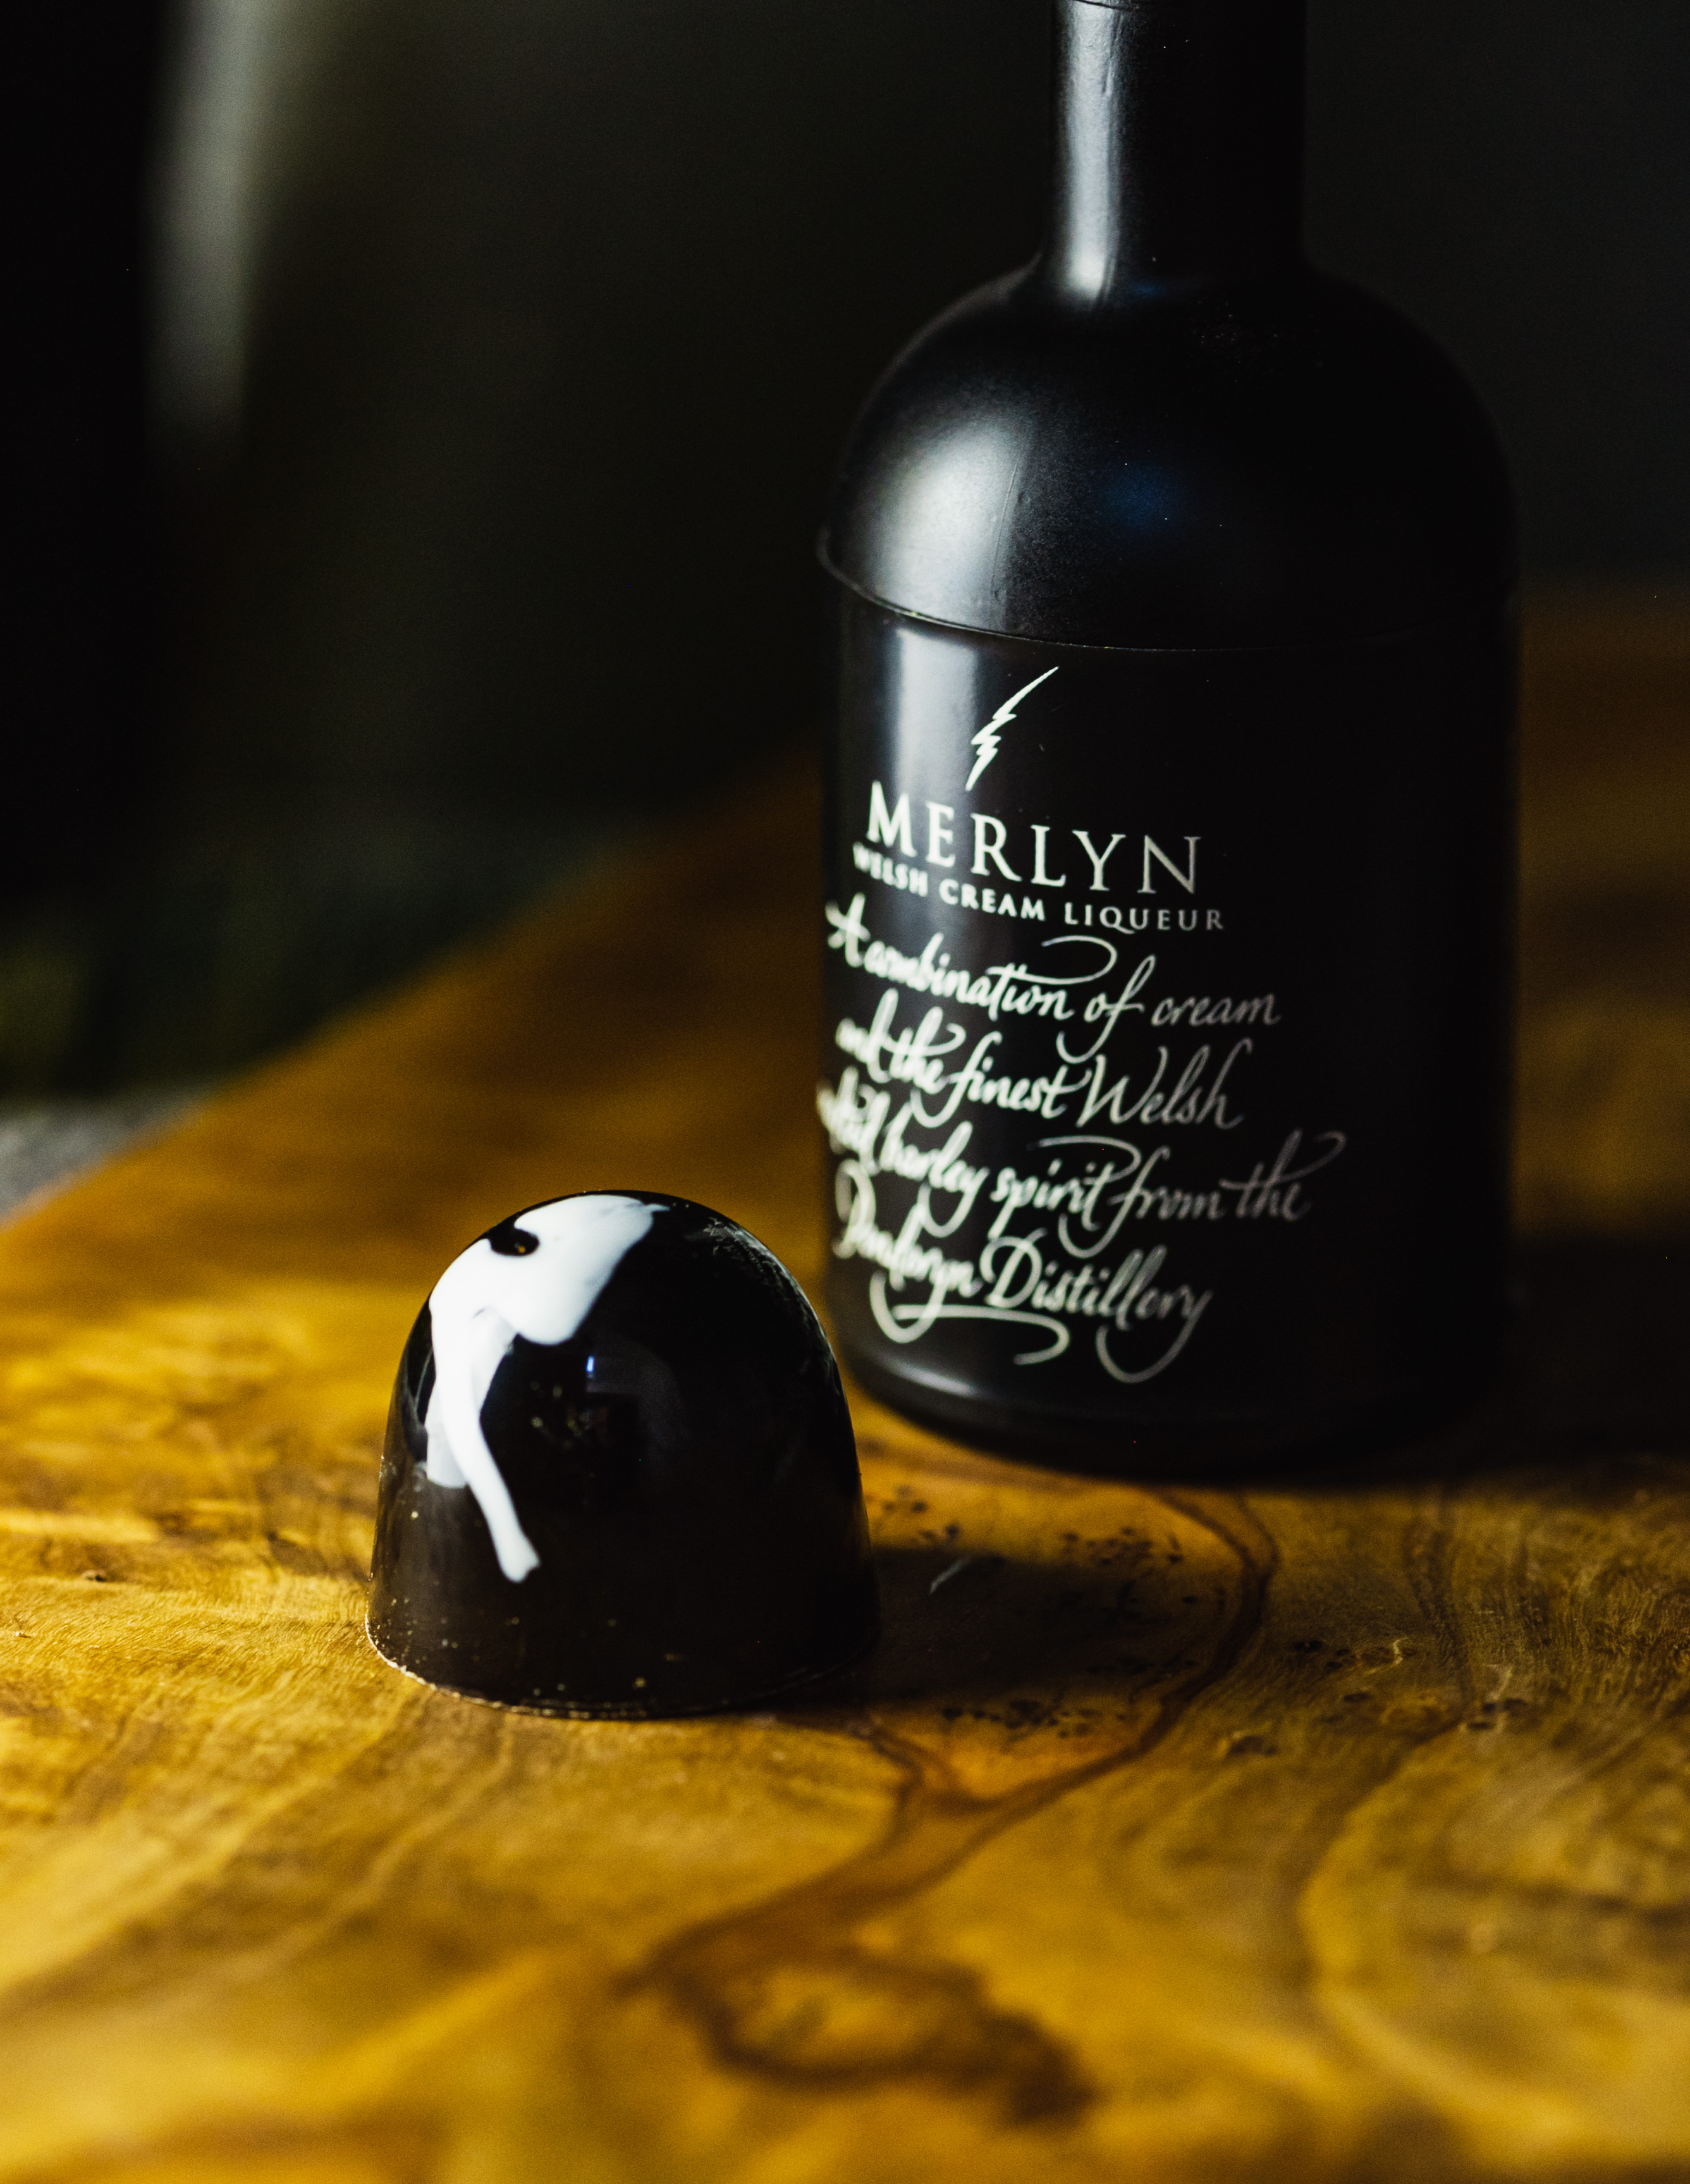 Dark Chocolate Merlyn (Wales' answer to Baileys) Liqueur BonBon.